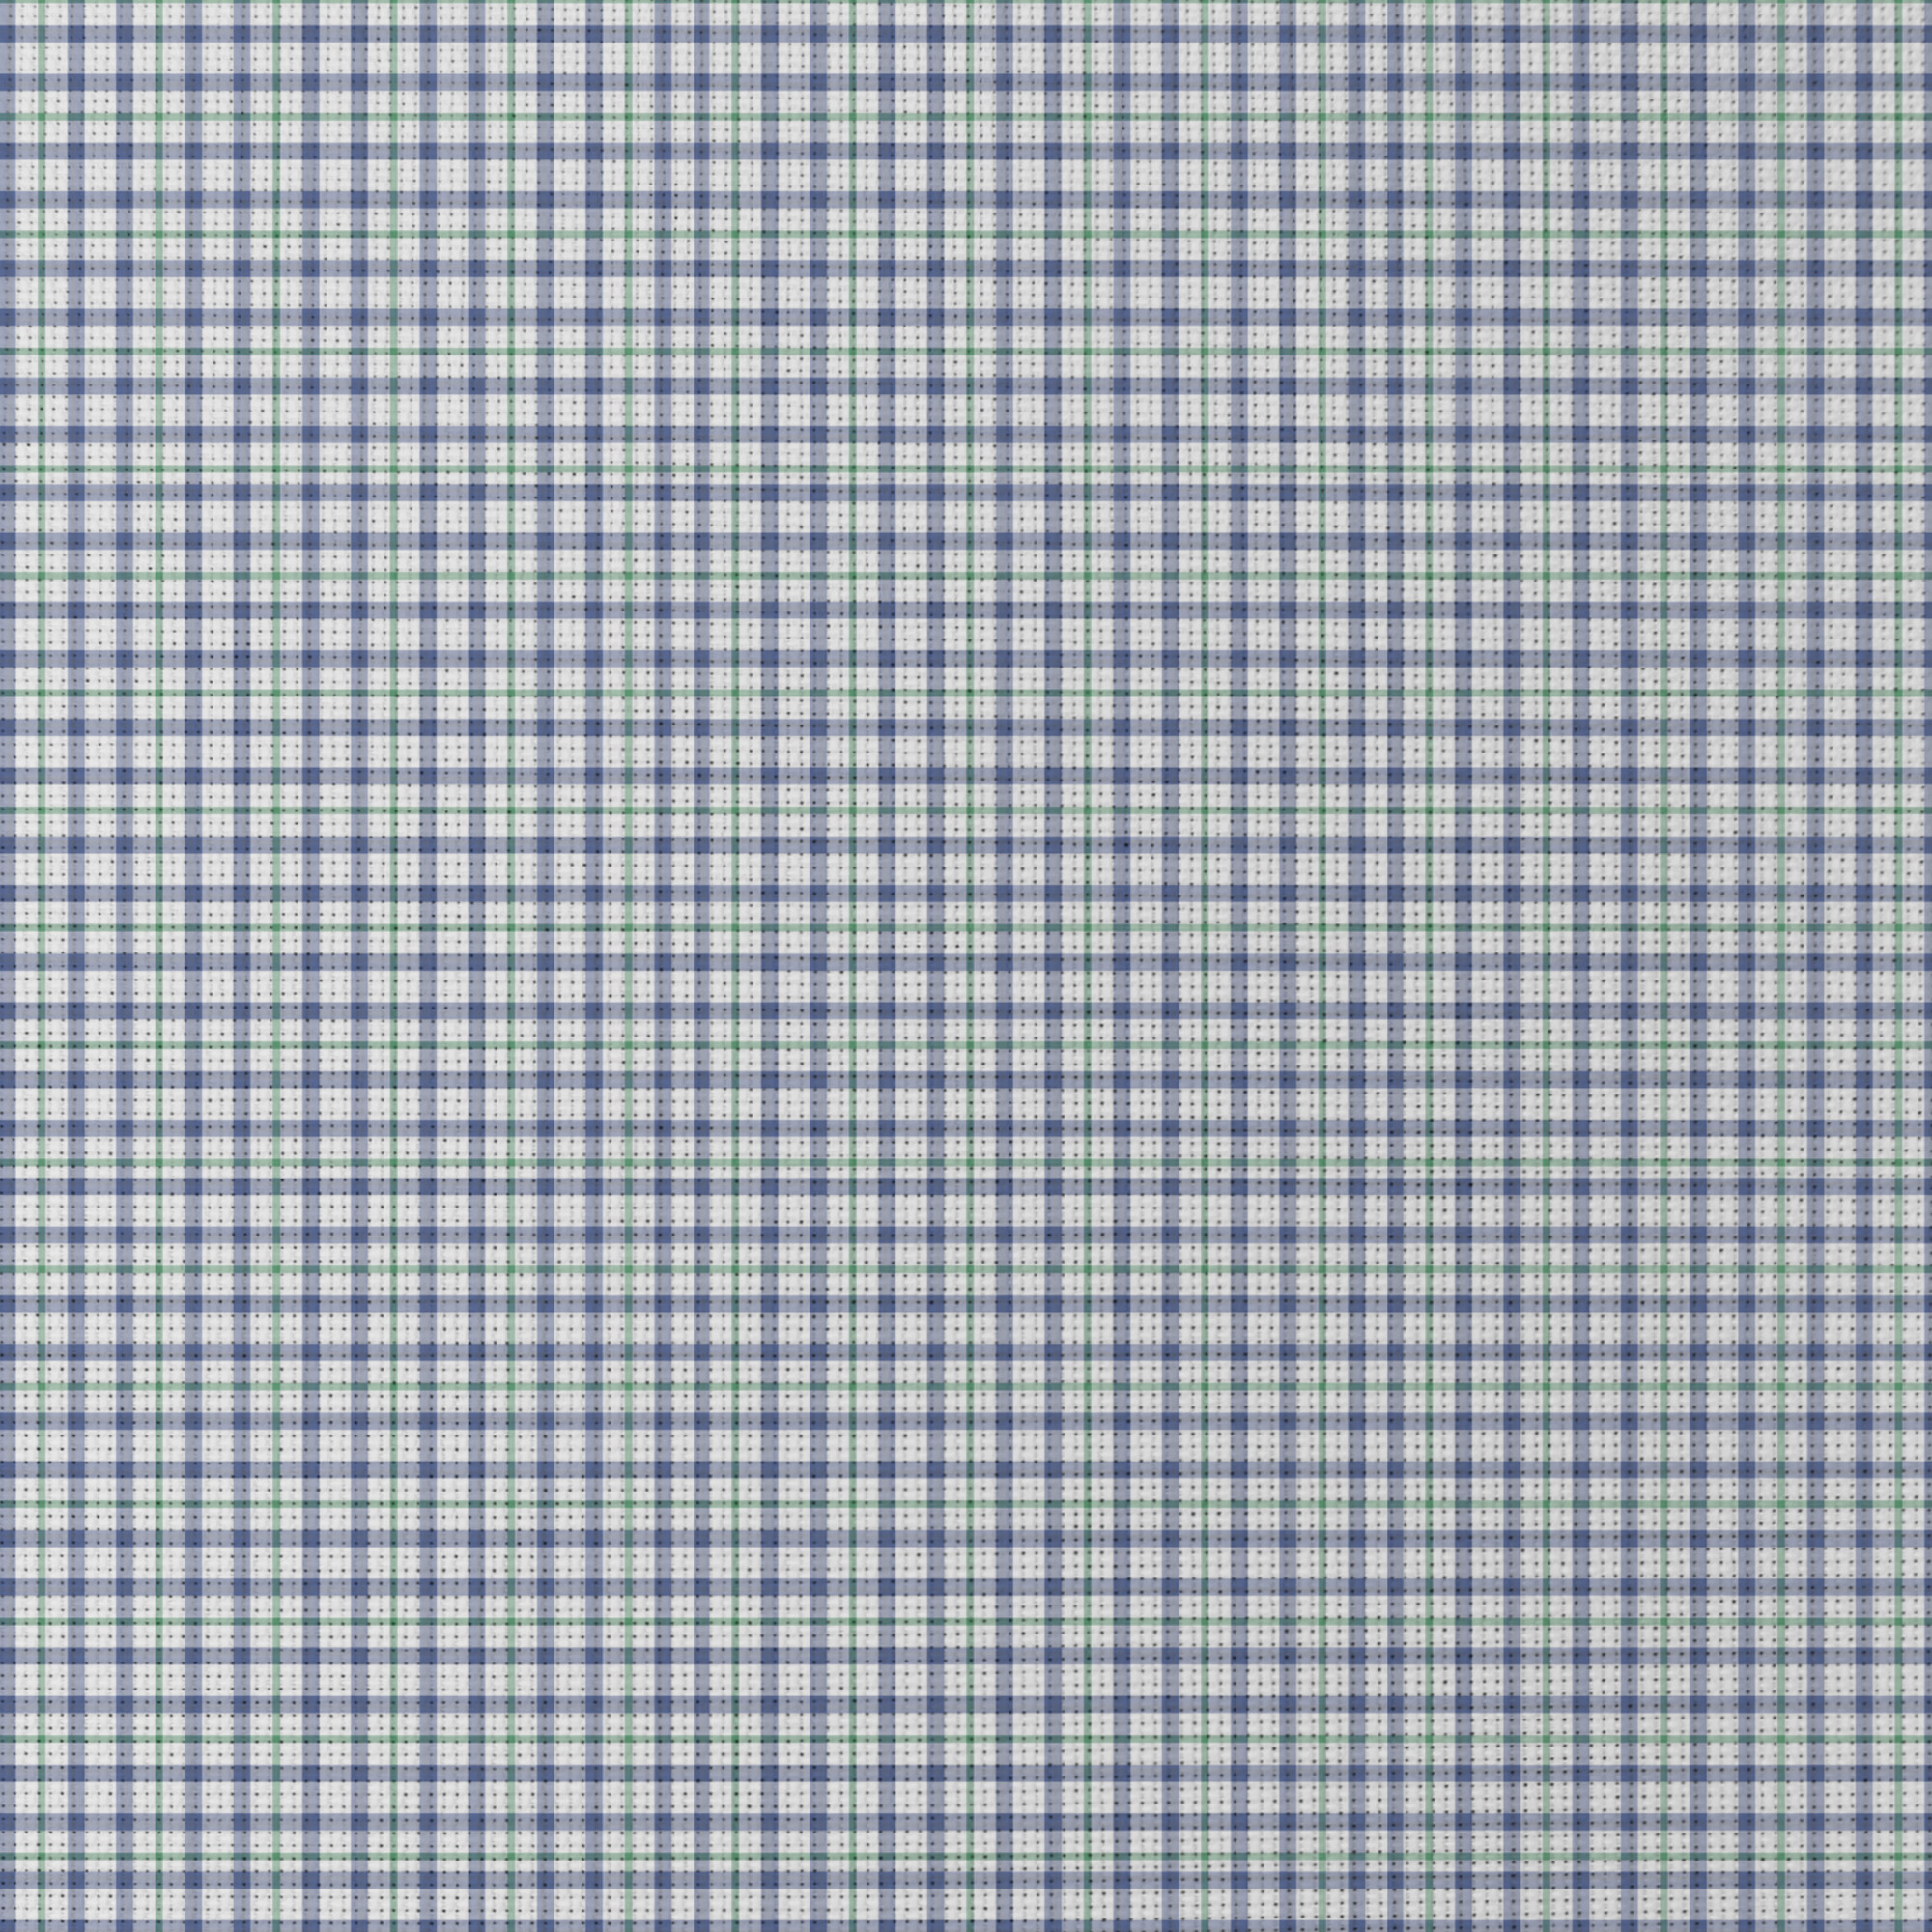 Blue And Green Check Patterned Cross Stitch Fabric